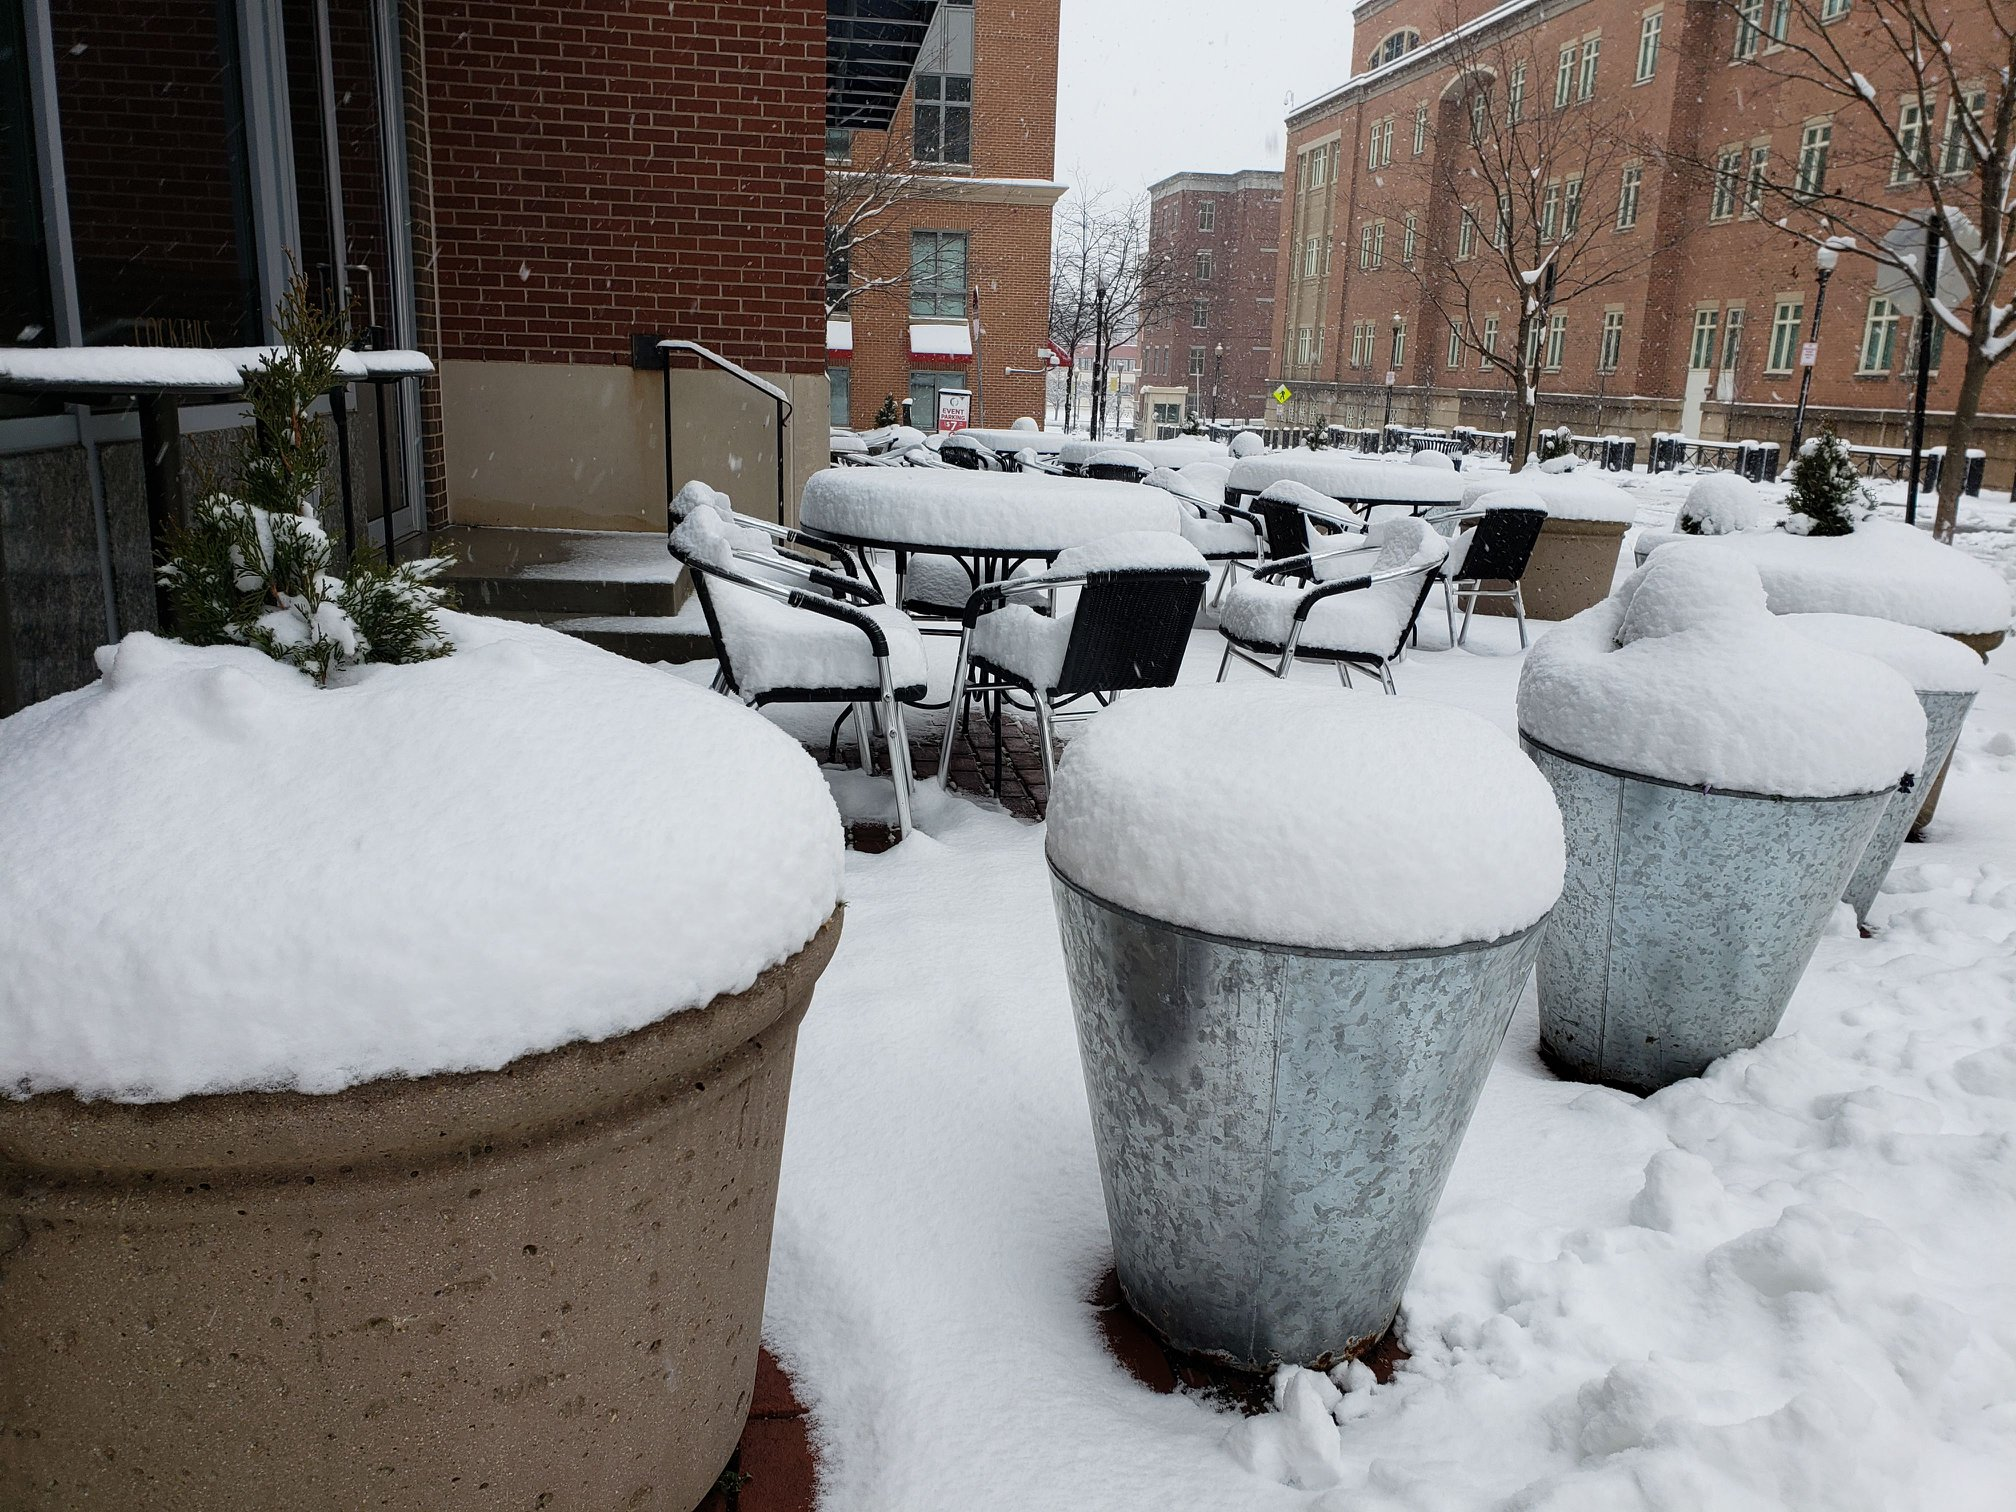 During this weekend's Winter Storm Gia, here's how much snowfall we've gotten in Alexandria, Virginia and the D.C. area as of 8:51 p.m. Sunday, January 13, according to measurements by the National Weather Service.